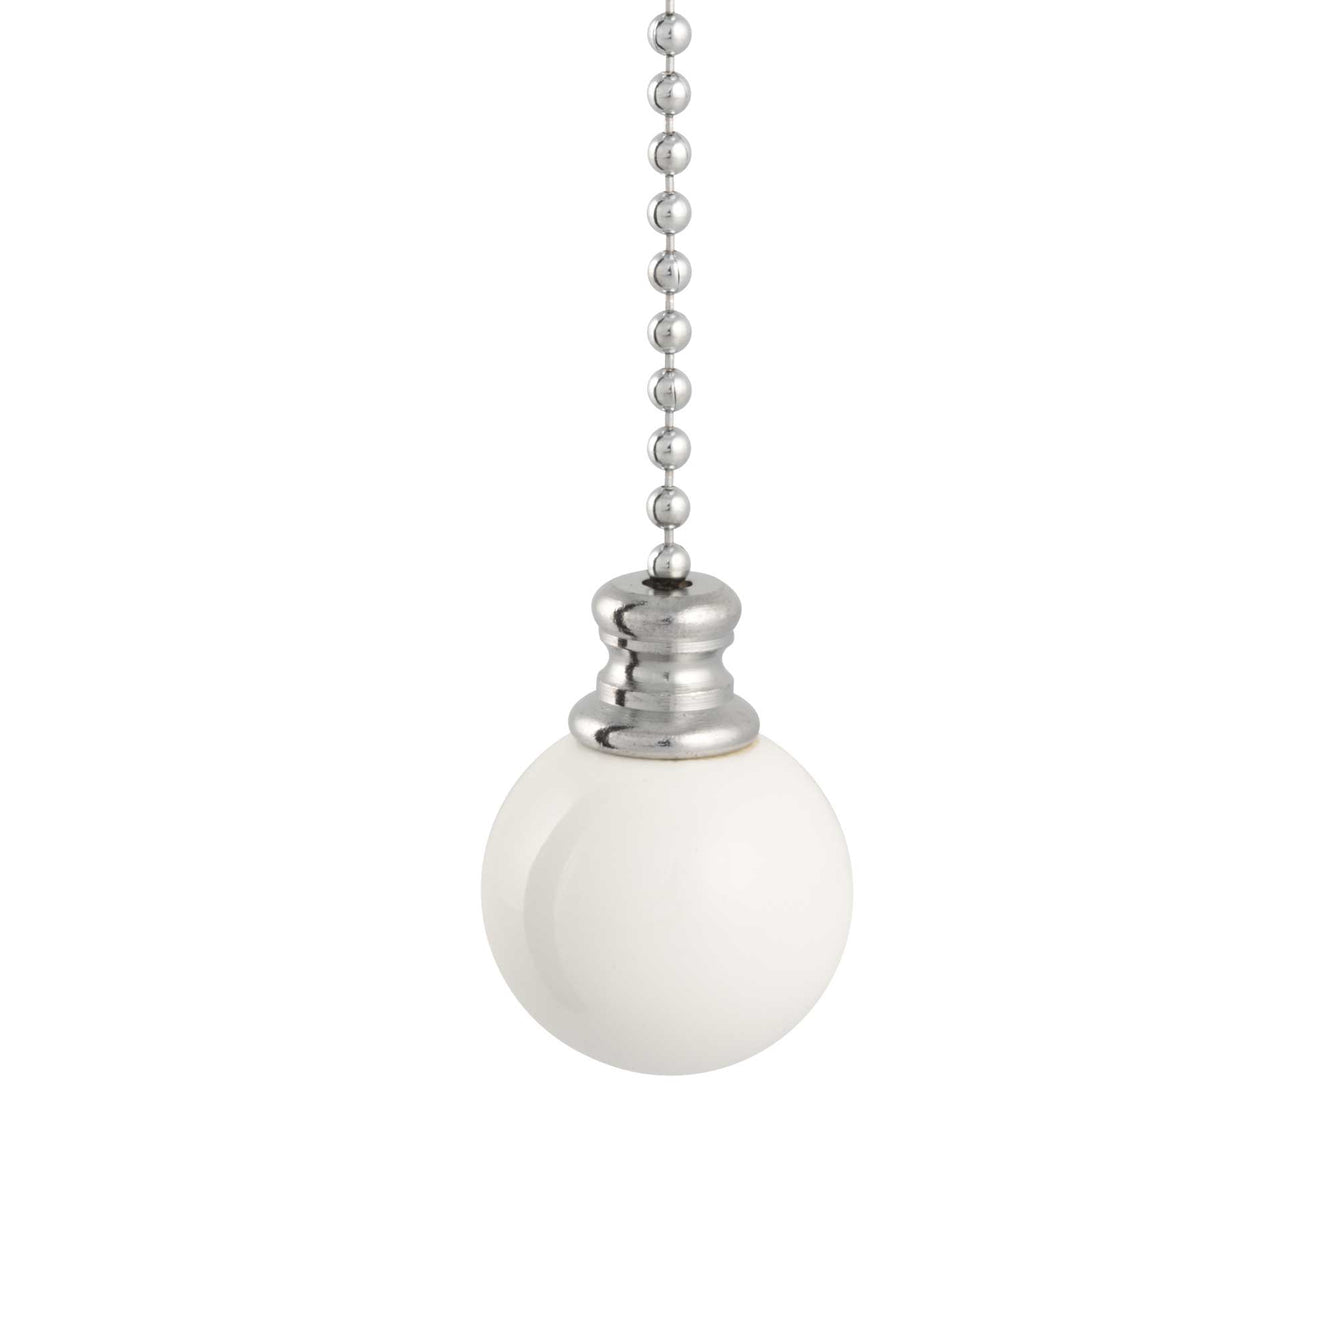 ElekTek Light Pull Chain Ball With 80cm Matching Chain - Buy It Better Green